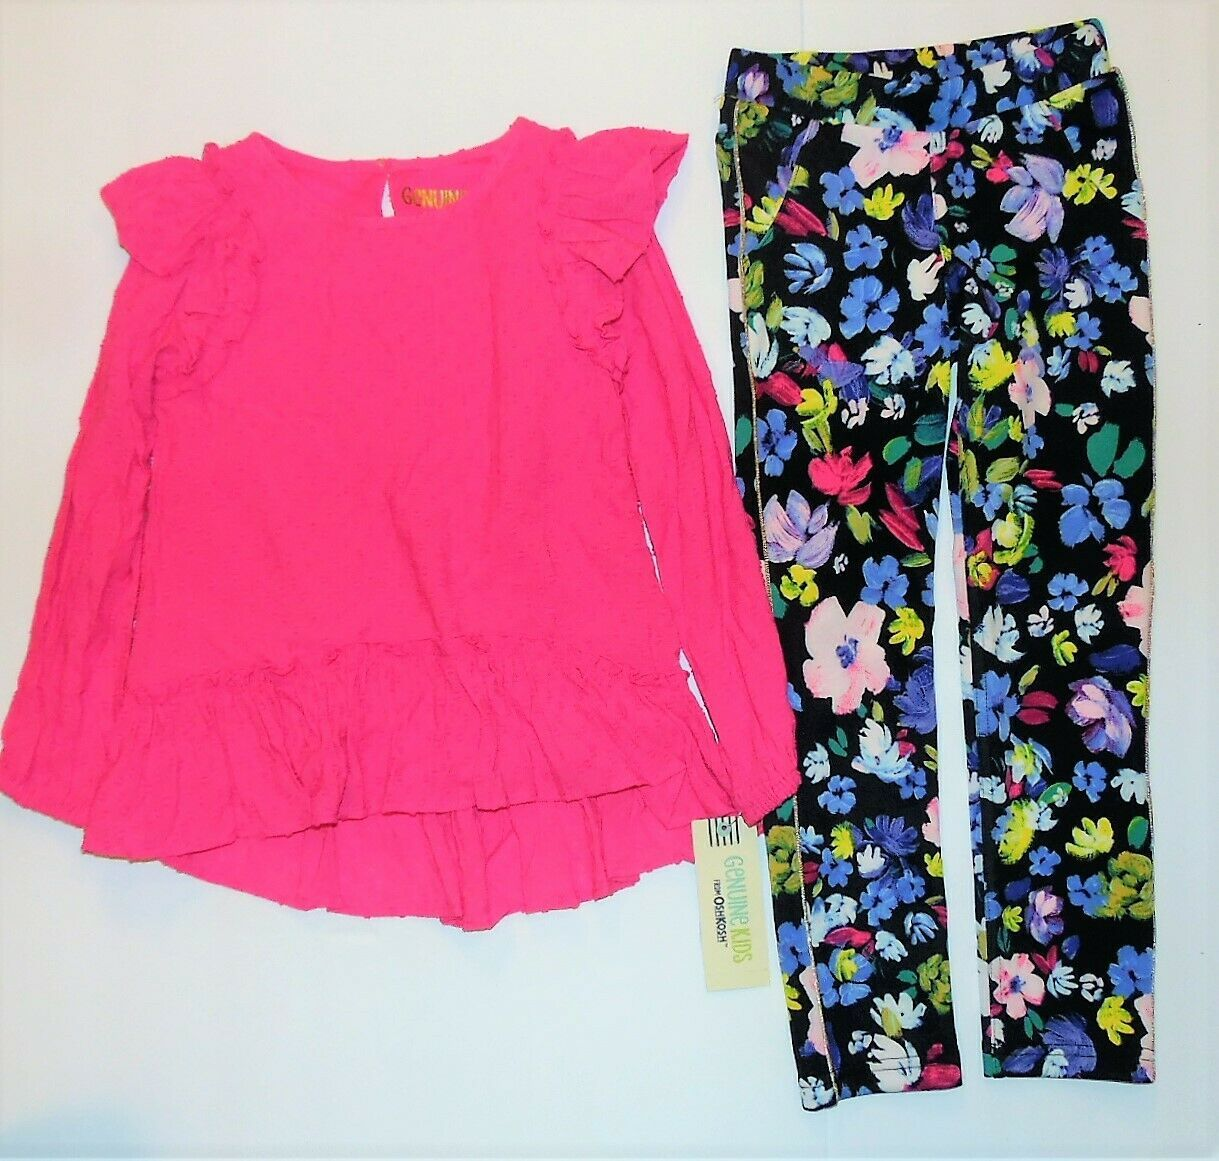 Genuine Kids From OshKosh Toddler Girls 2pc Pink Floral Outfit Size 3T NWT - $20.36